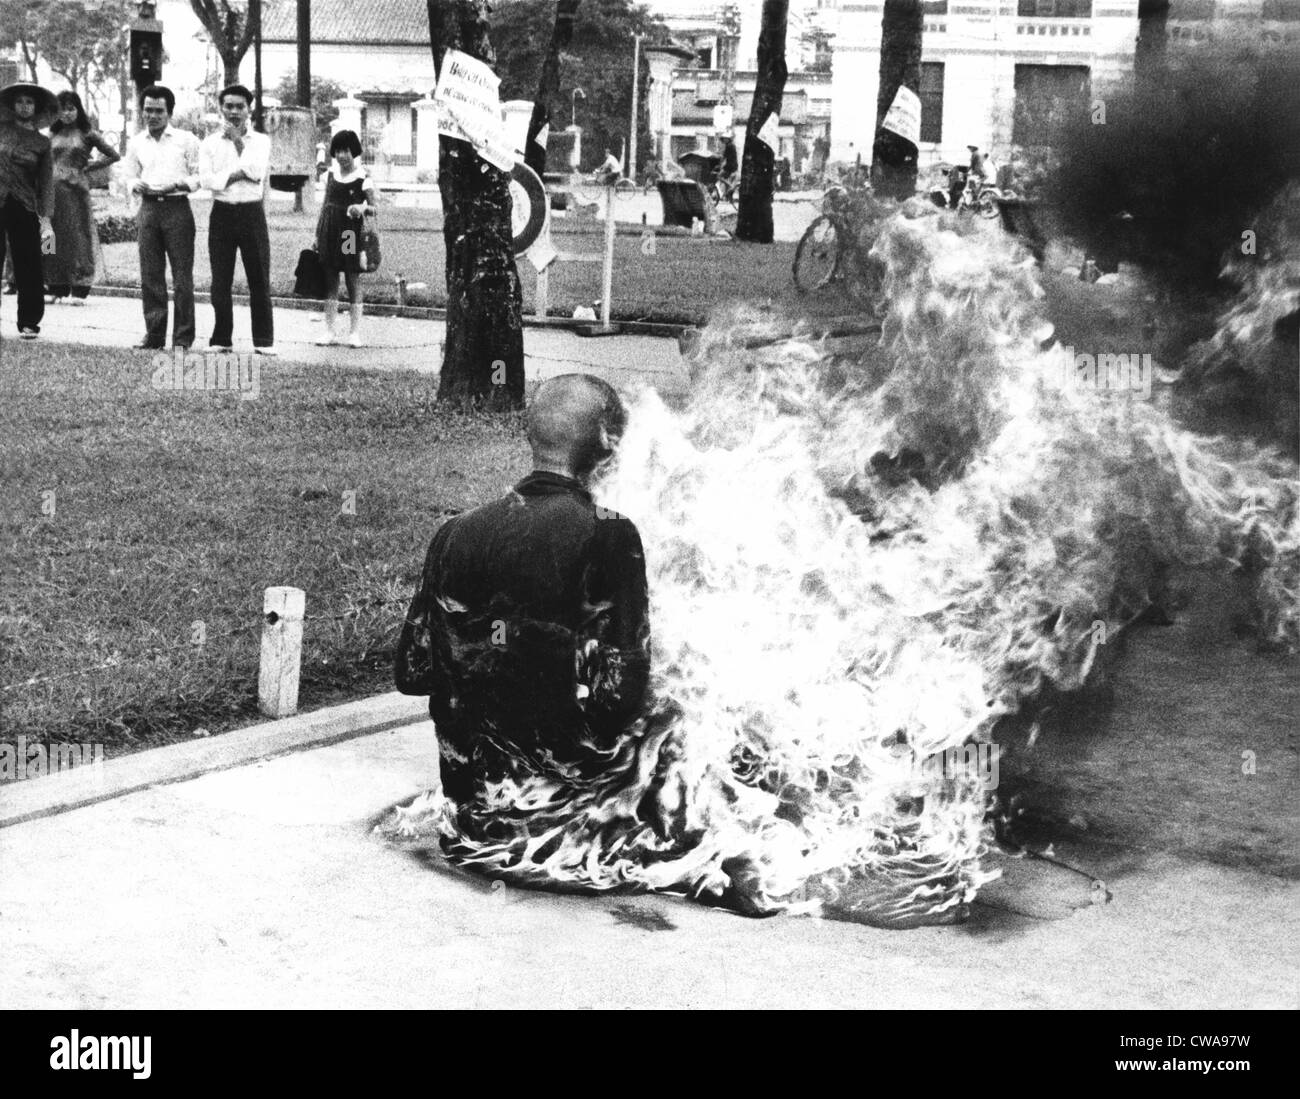 A young Buddhist monk burned himself to death in Saigon's Market Square, to protest the government's religious policies. 1963. Stock Photo